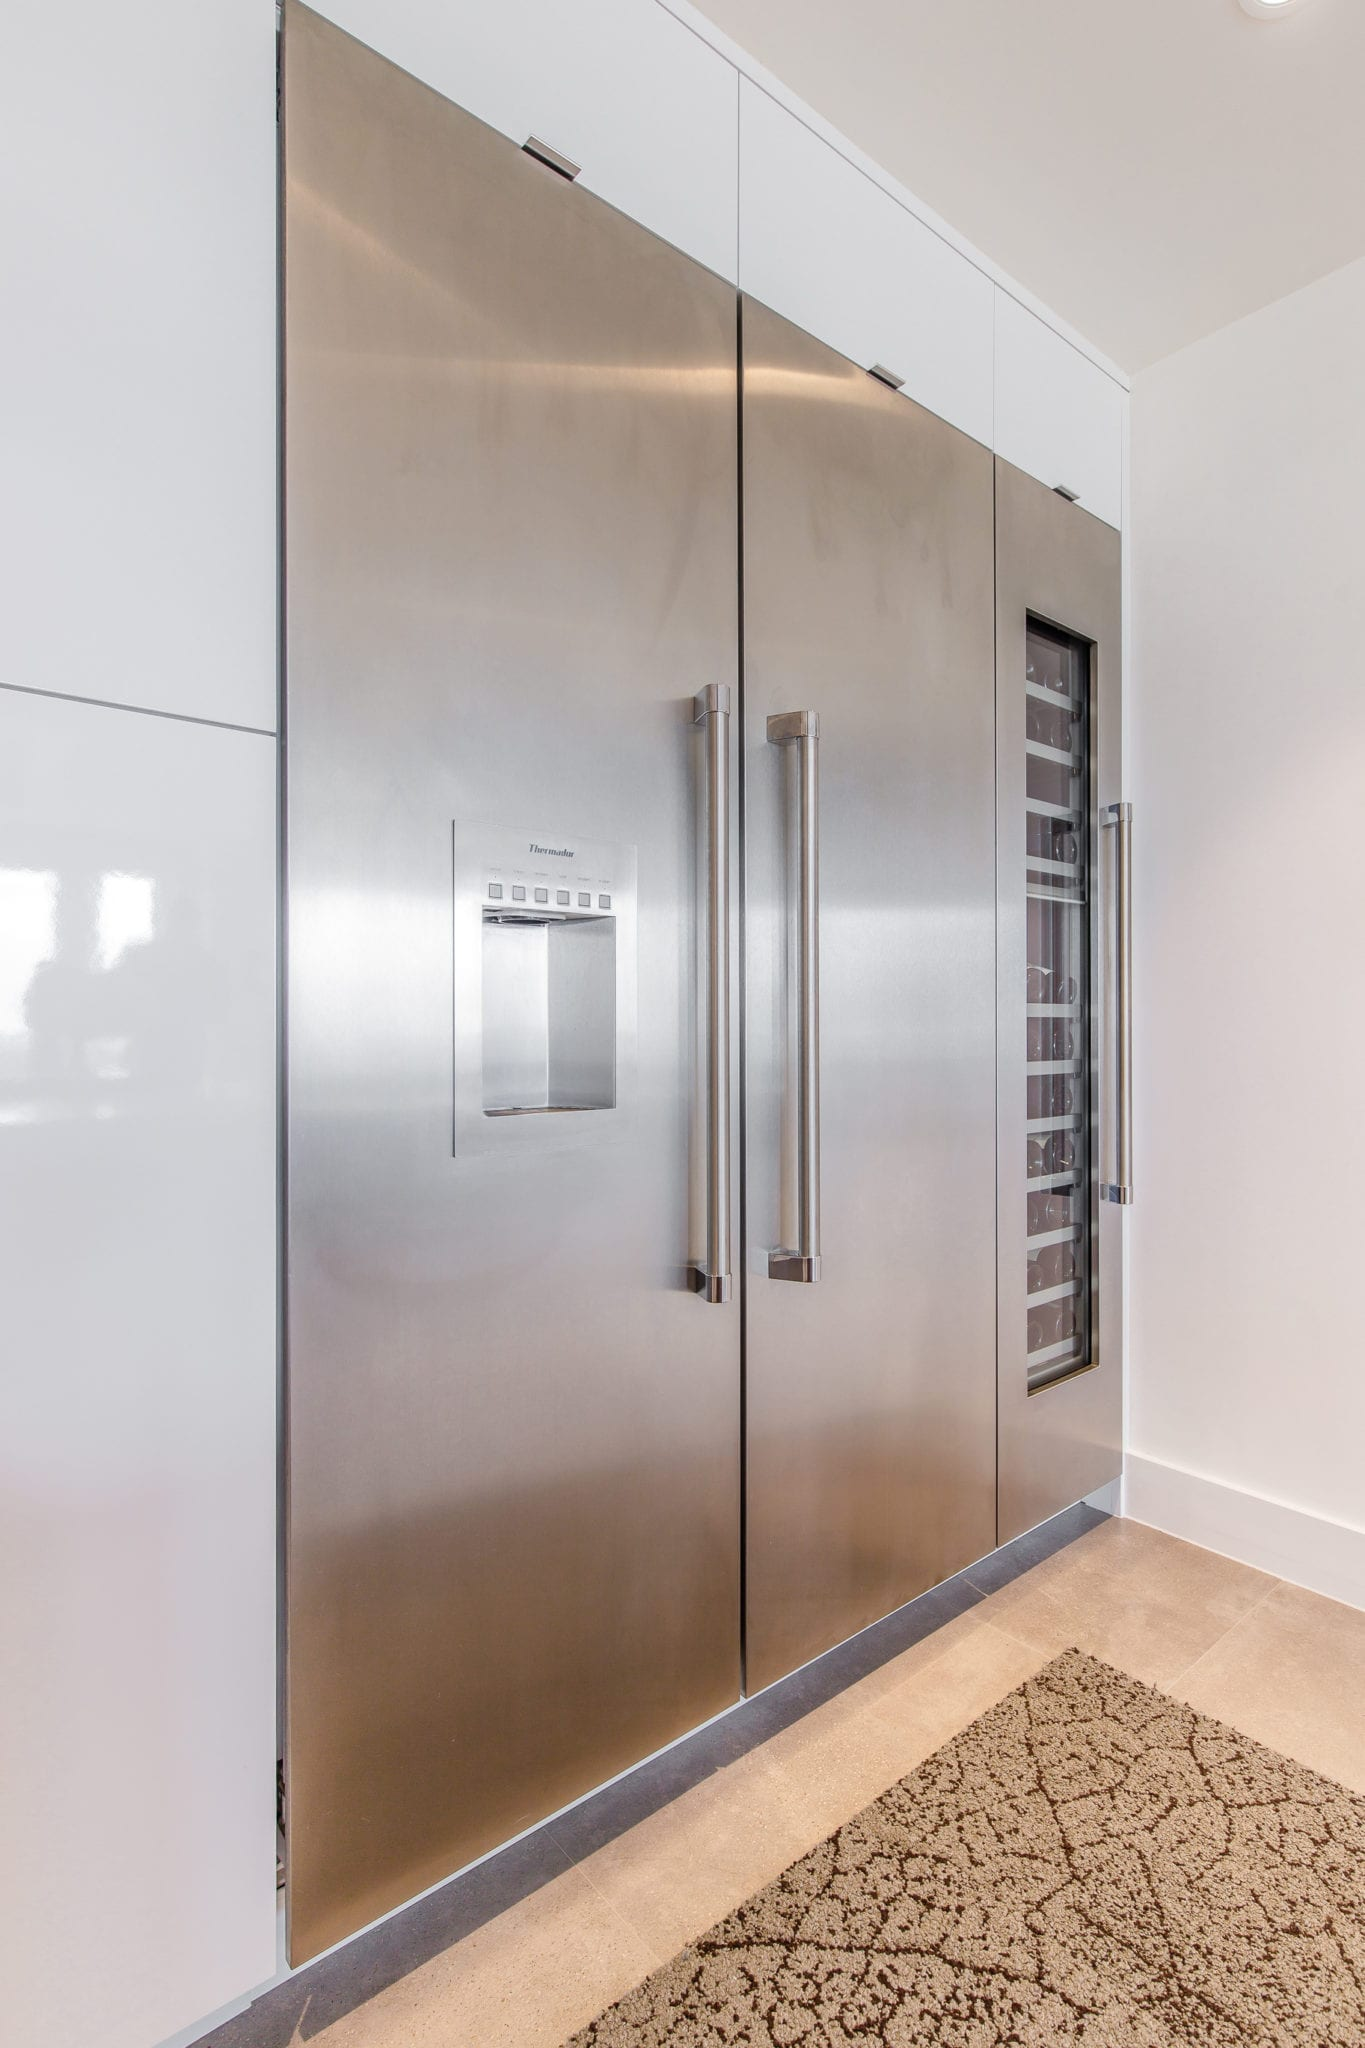 Penthouse Kitchen Thermador Refrigerator